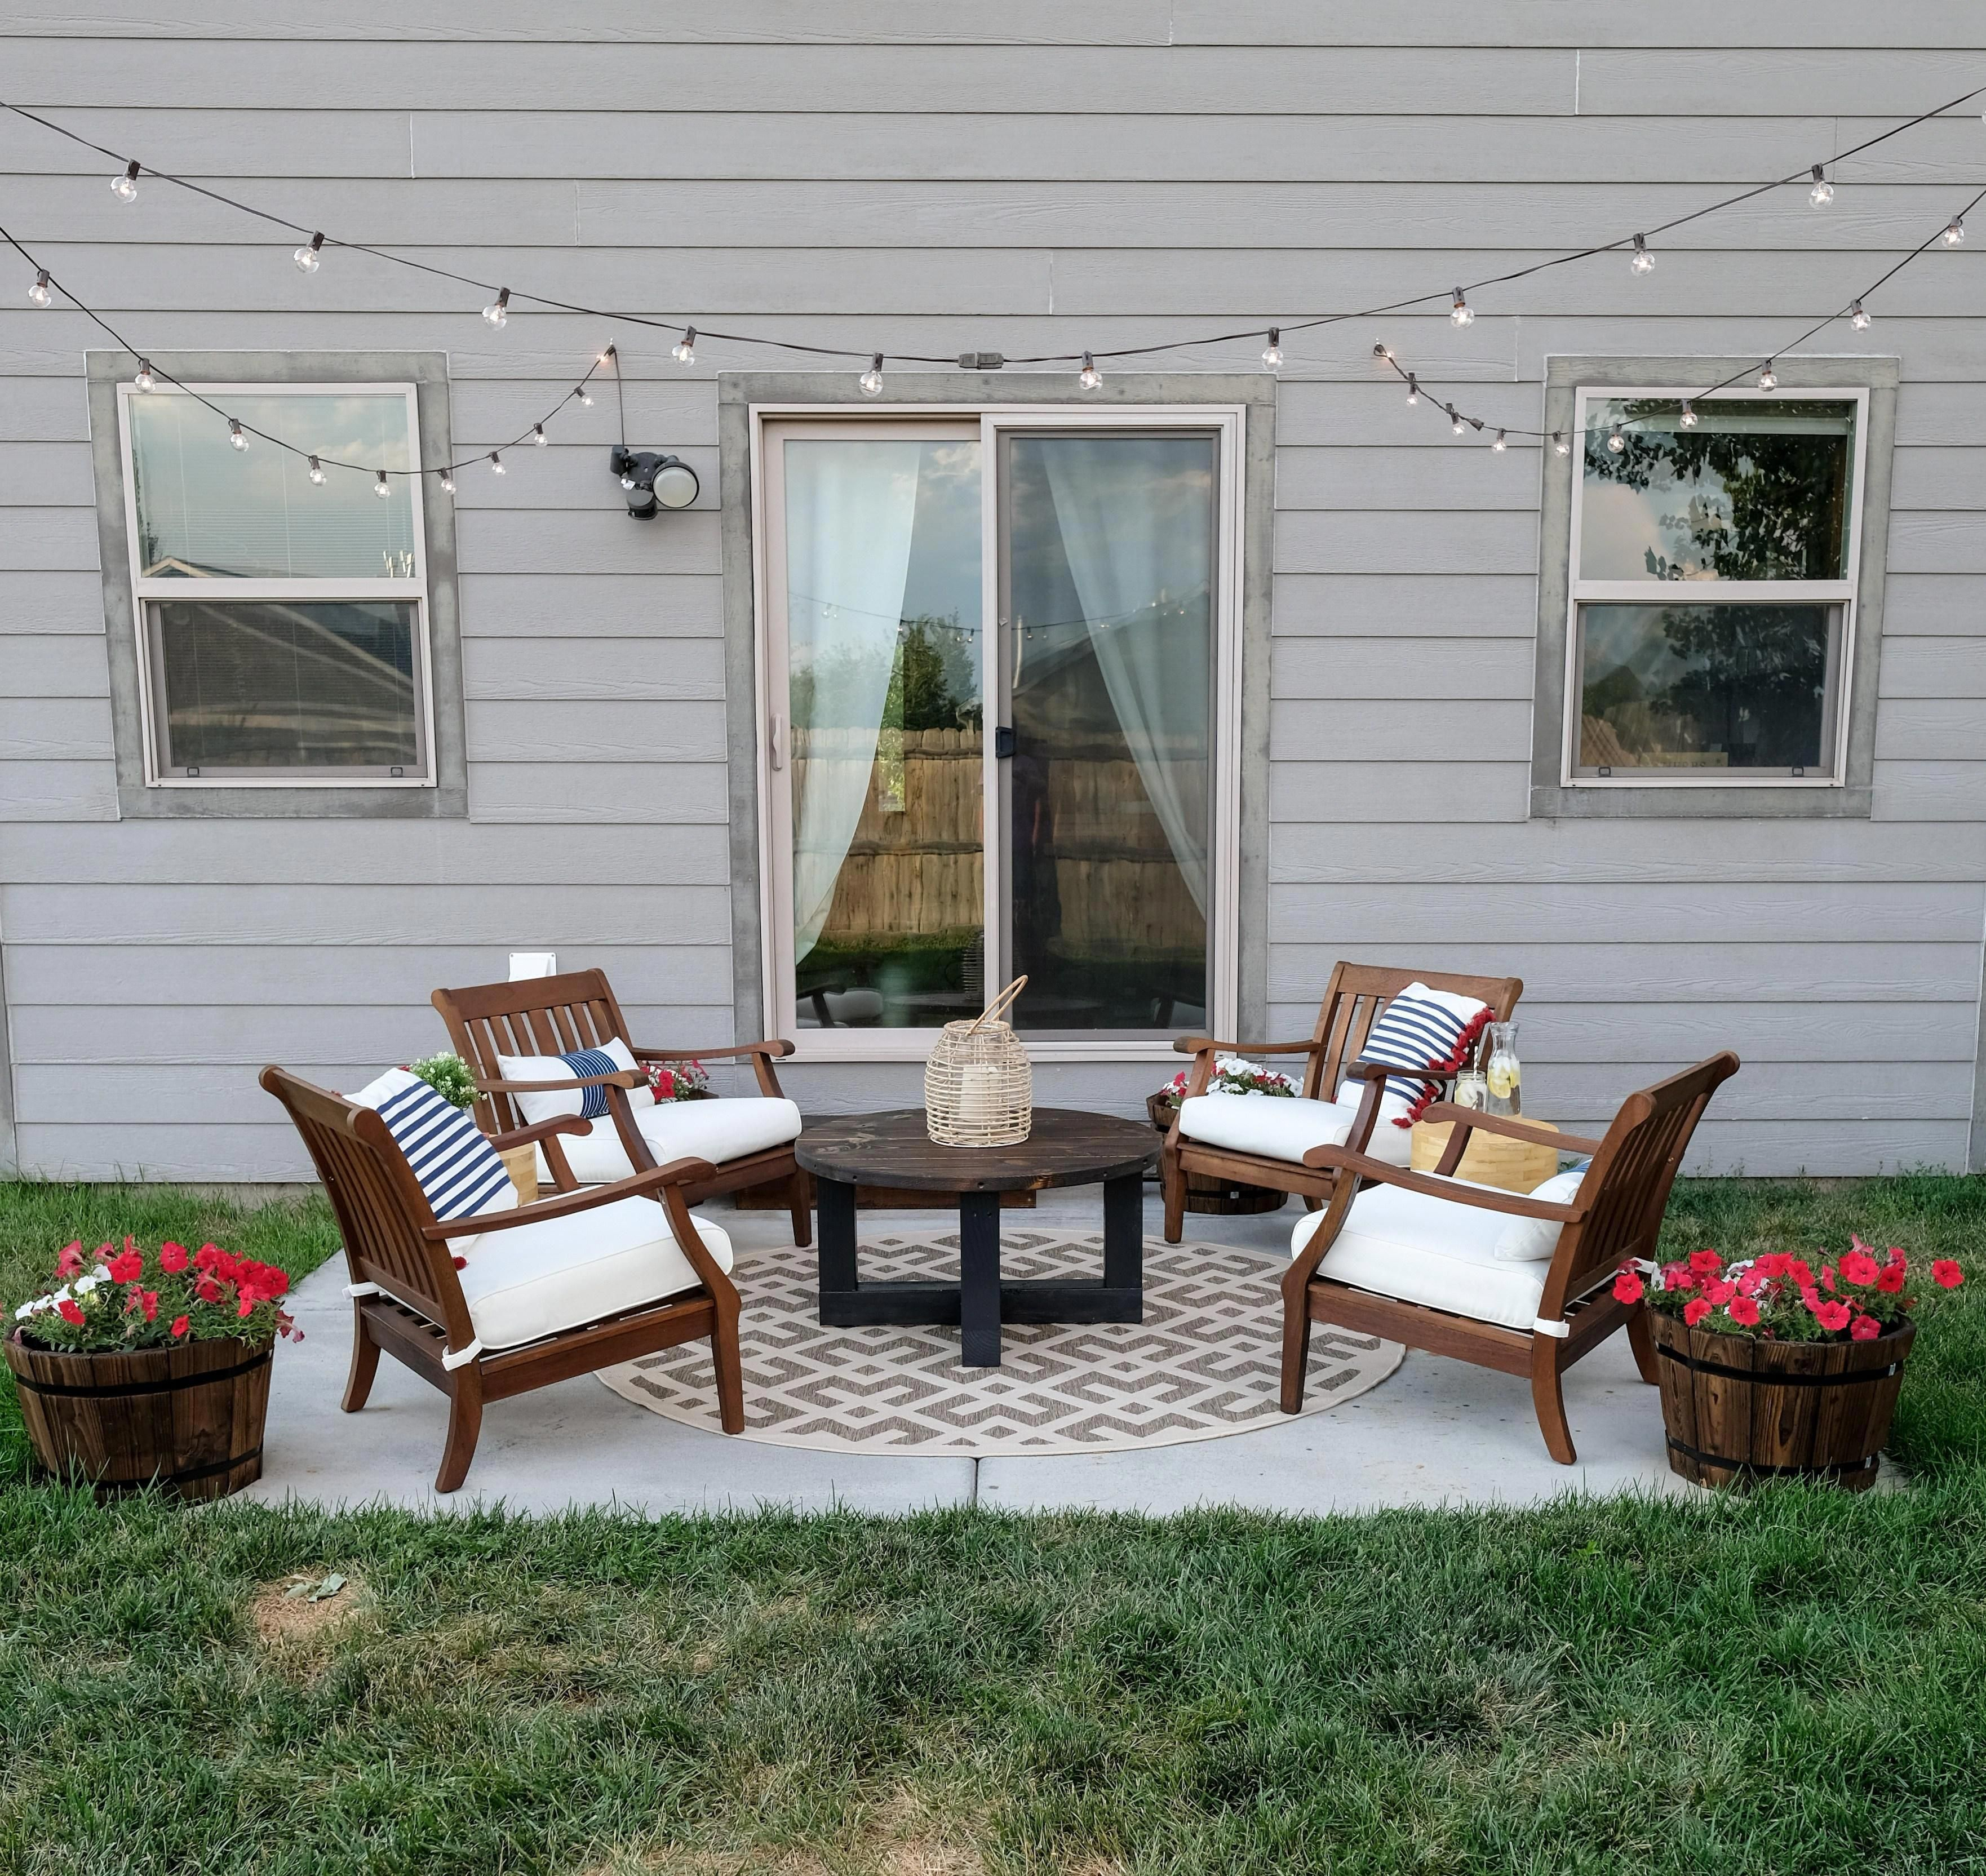 How To Find Backyard Porch Ideas On A Budget Patio